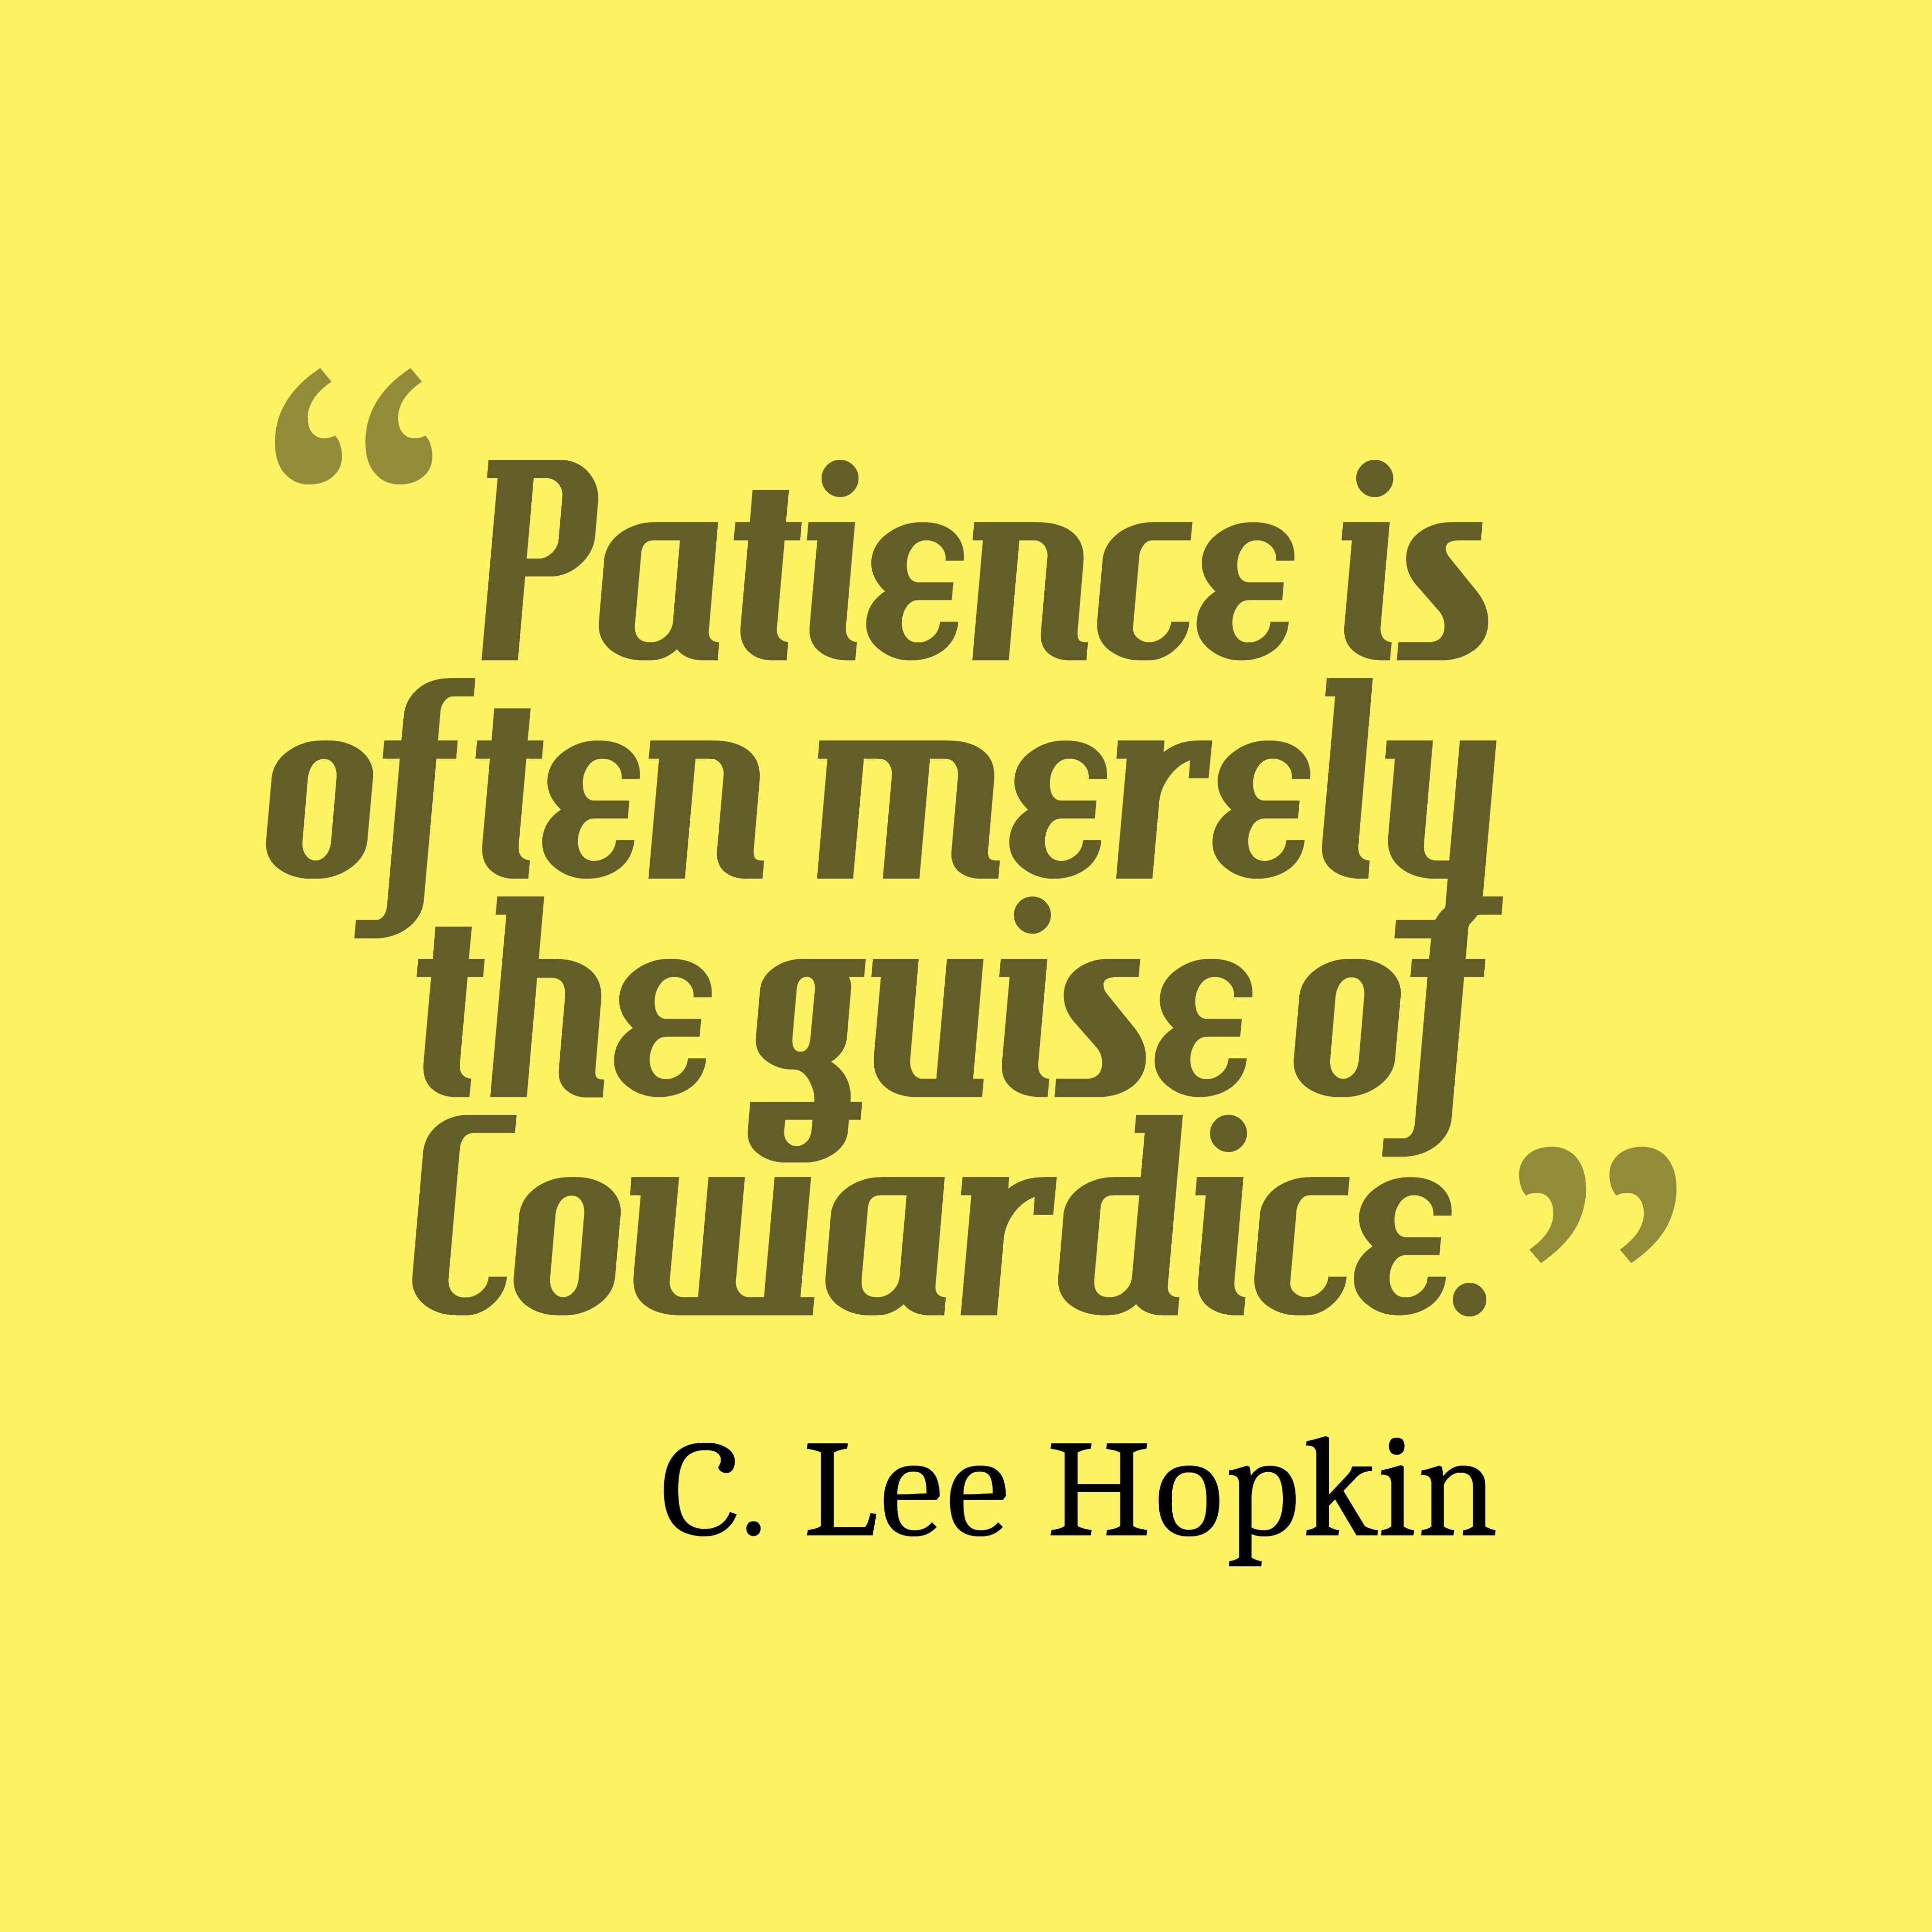 Quotes image of Patience is often merely the guise of Cowardice.